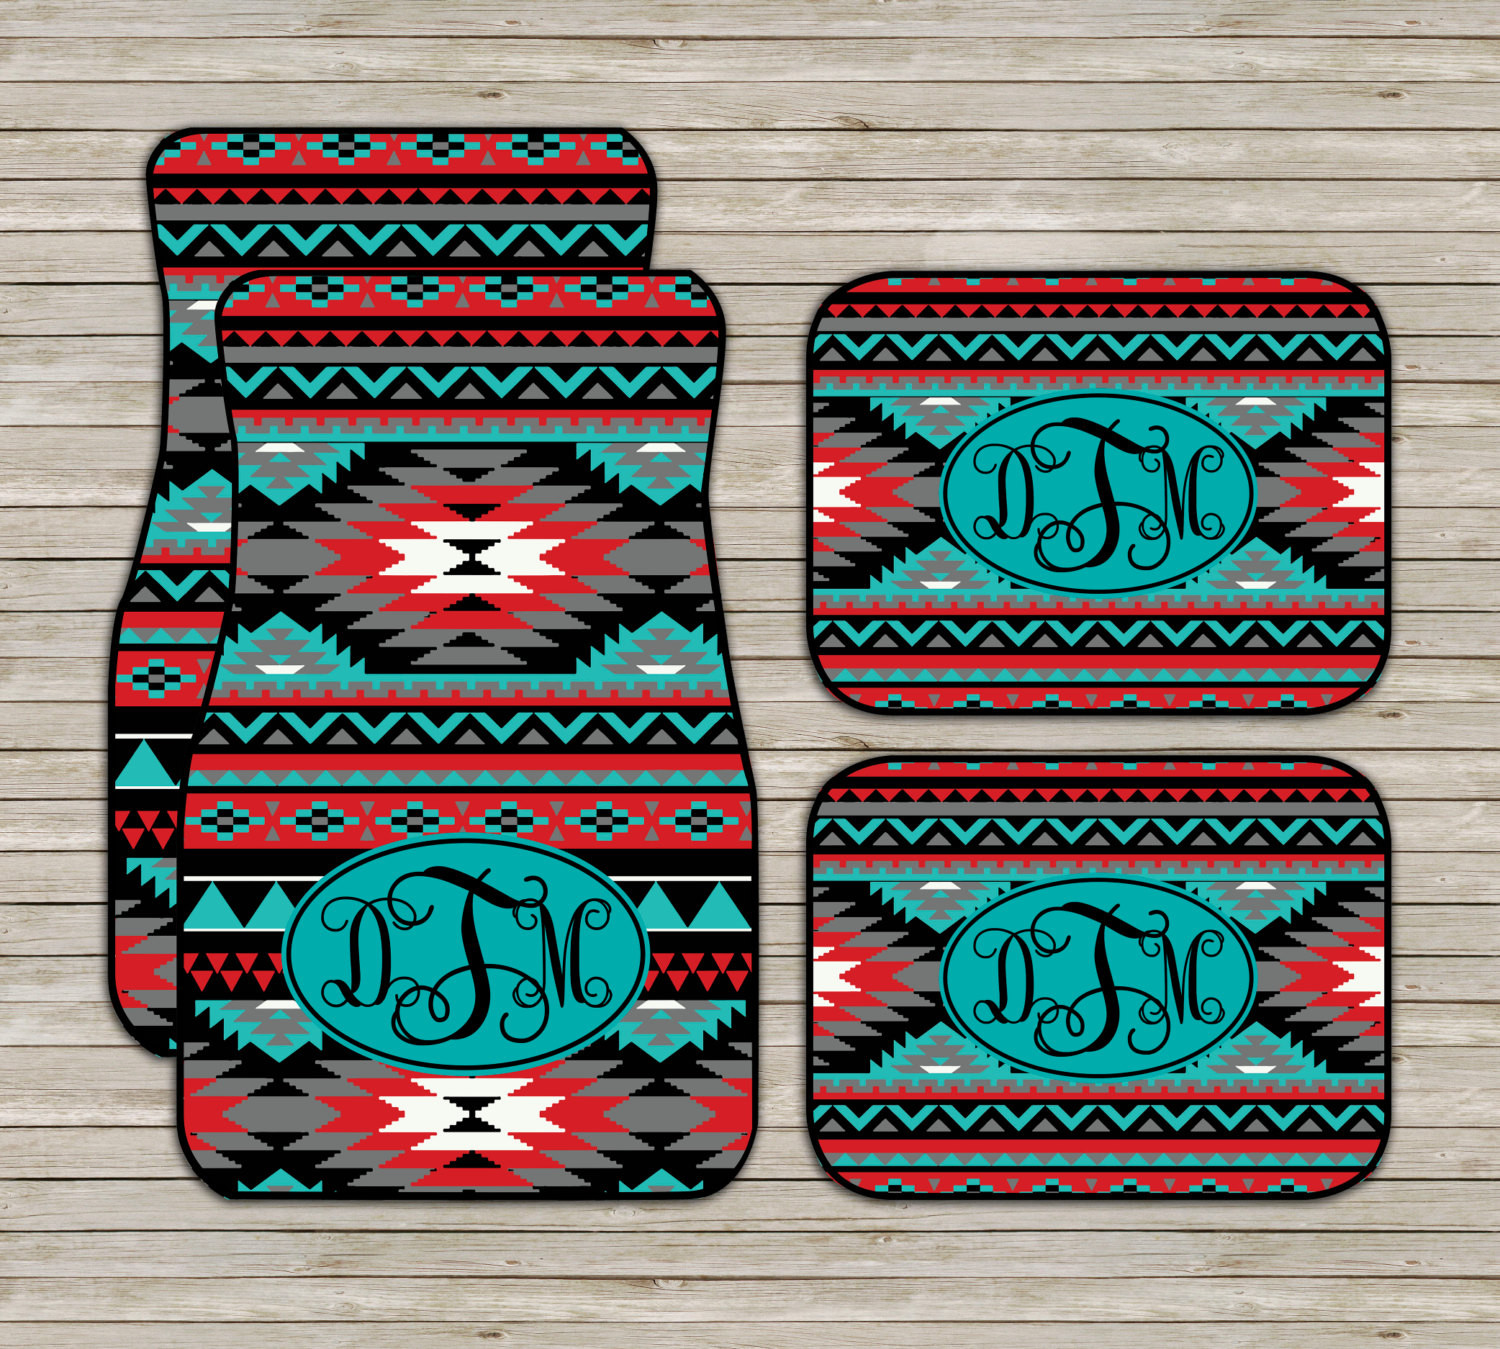 Best ideas about Car Accessories Gift Ideas . Save or Pin Aztec Tribal Car Mats Aztec Carmats Personalized Custom Now.